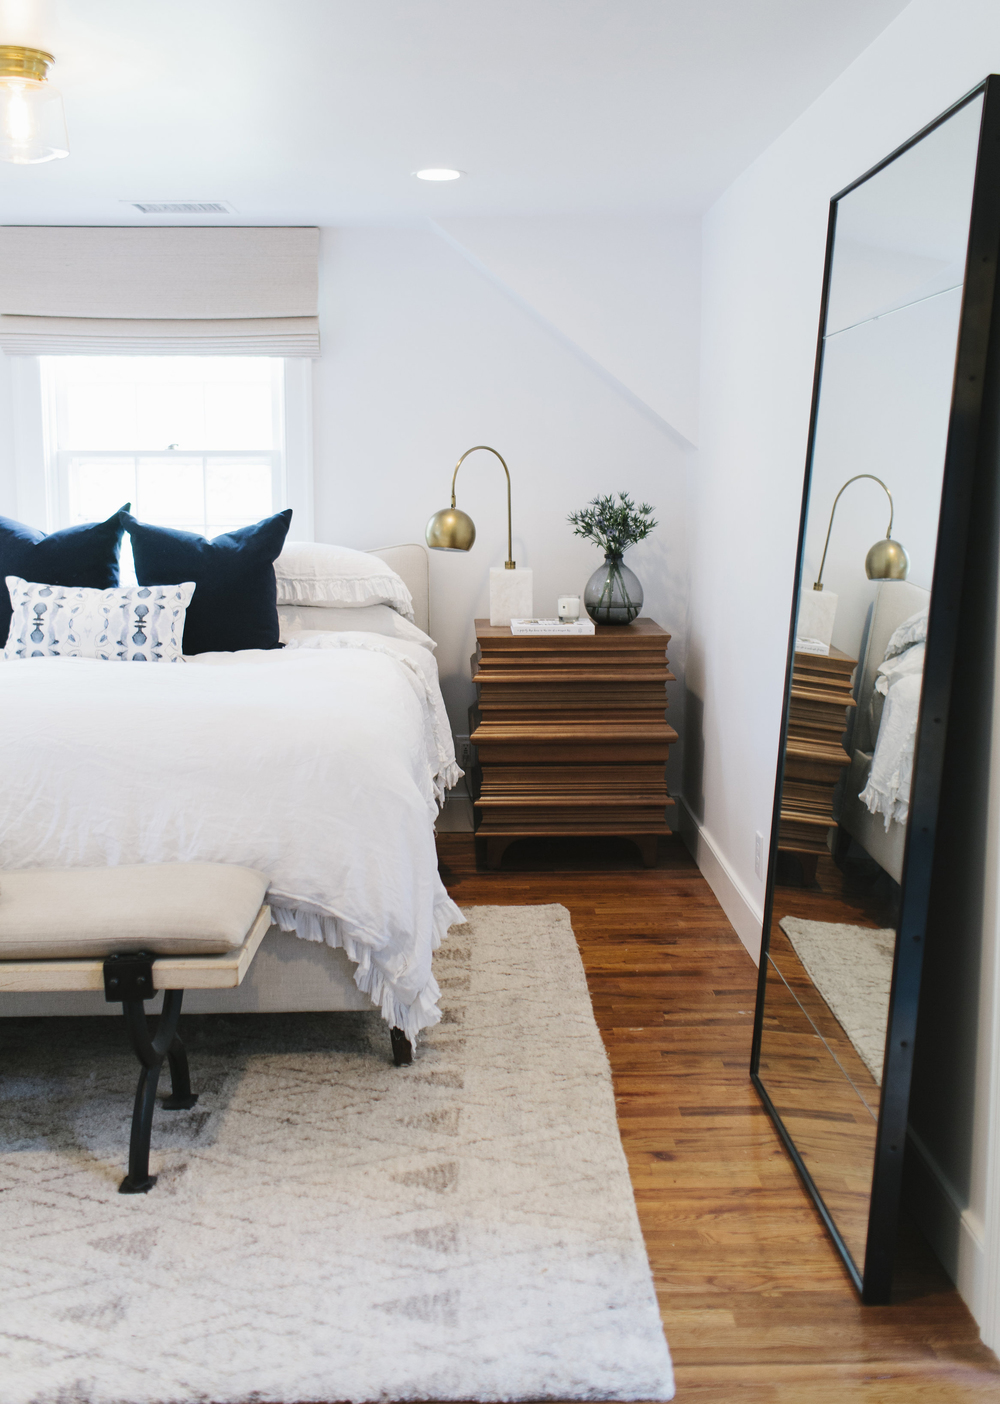 Lynwood Remodel: Master Bedroom and Bath — STUDIO MCGEE